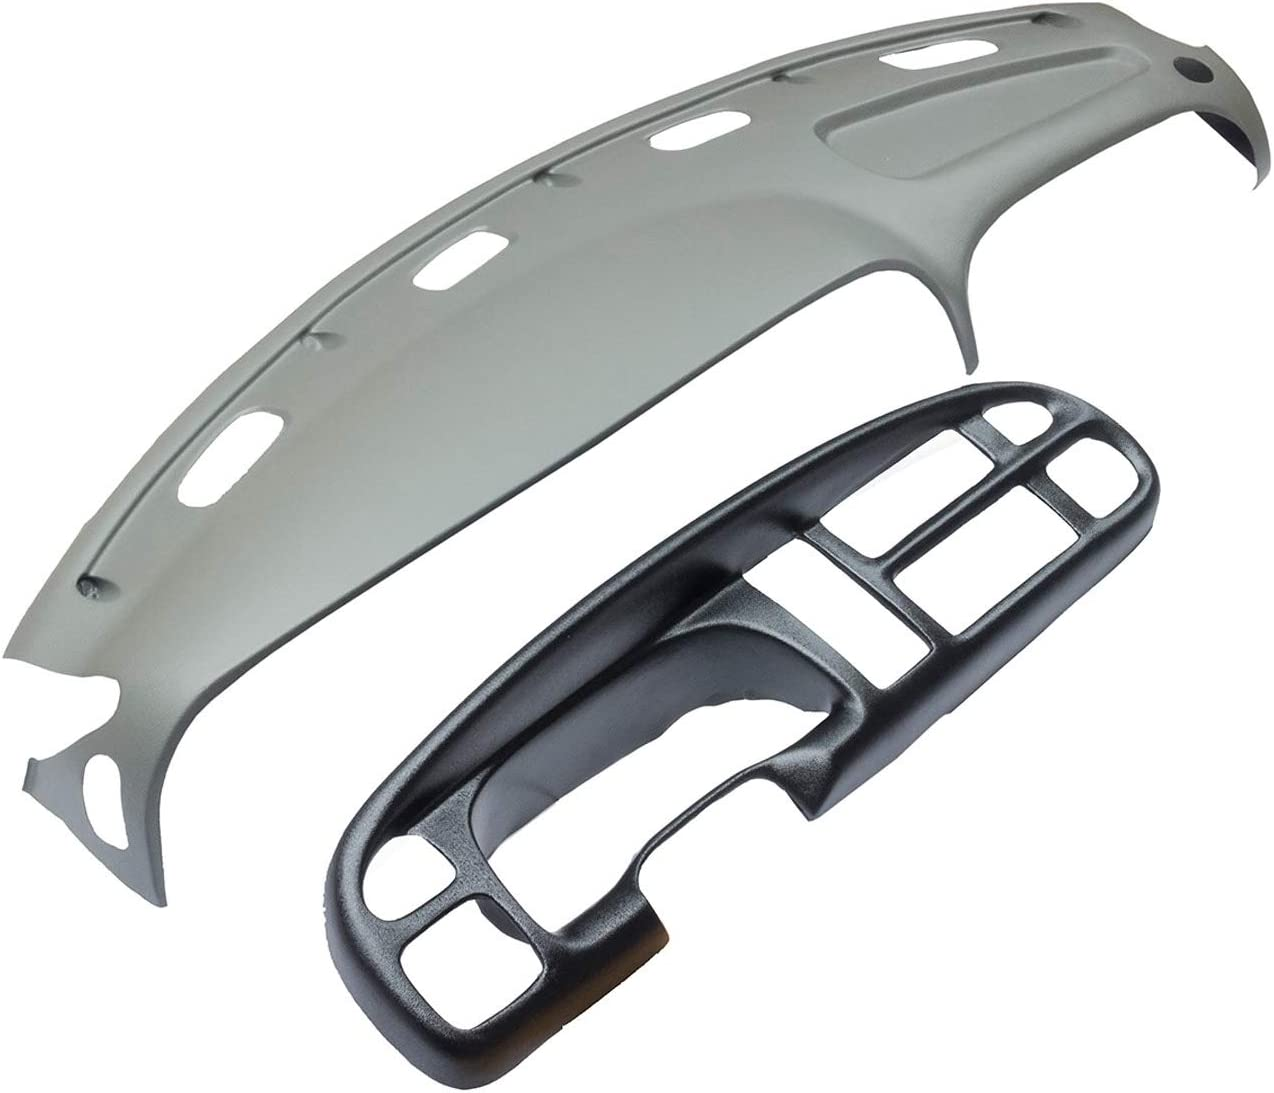 KARPAL Molded Dash and Bezel Cover Compatible With 1998-2001 Dodge Ram 1500 2500 3500 Mist Grey